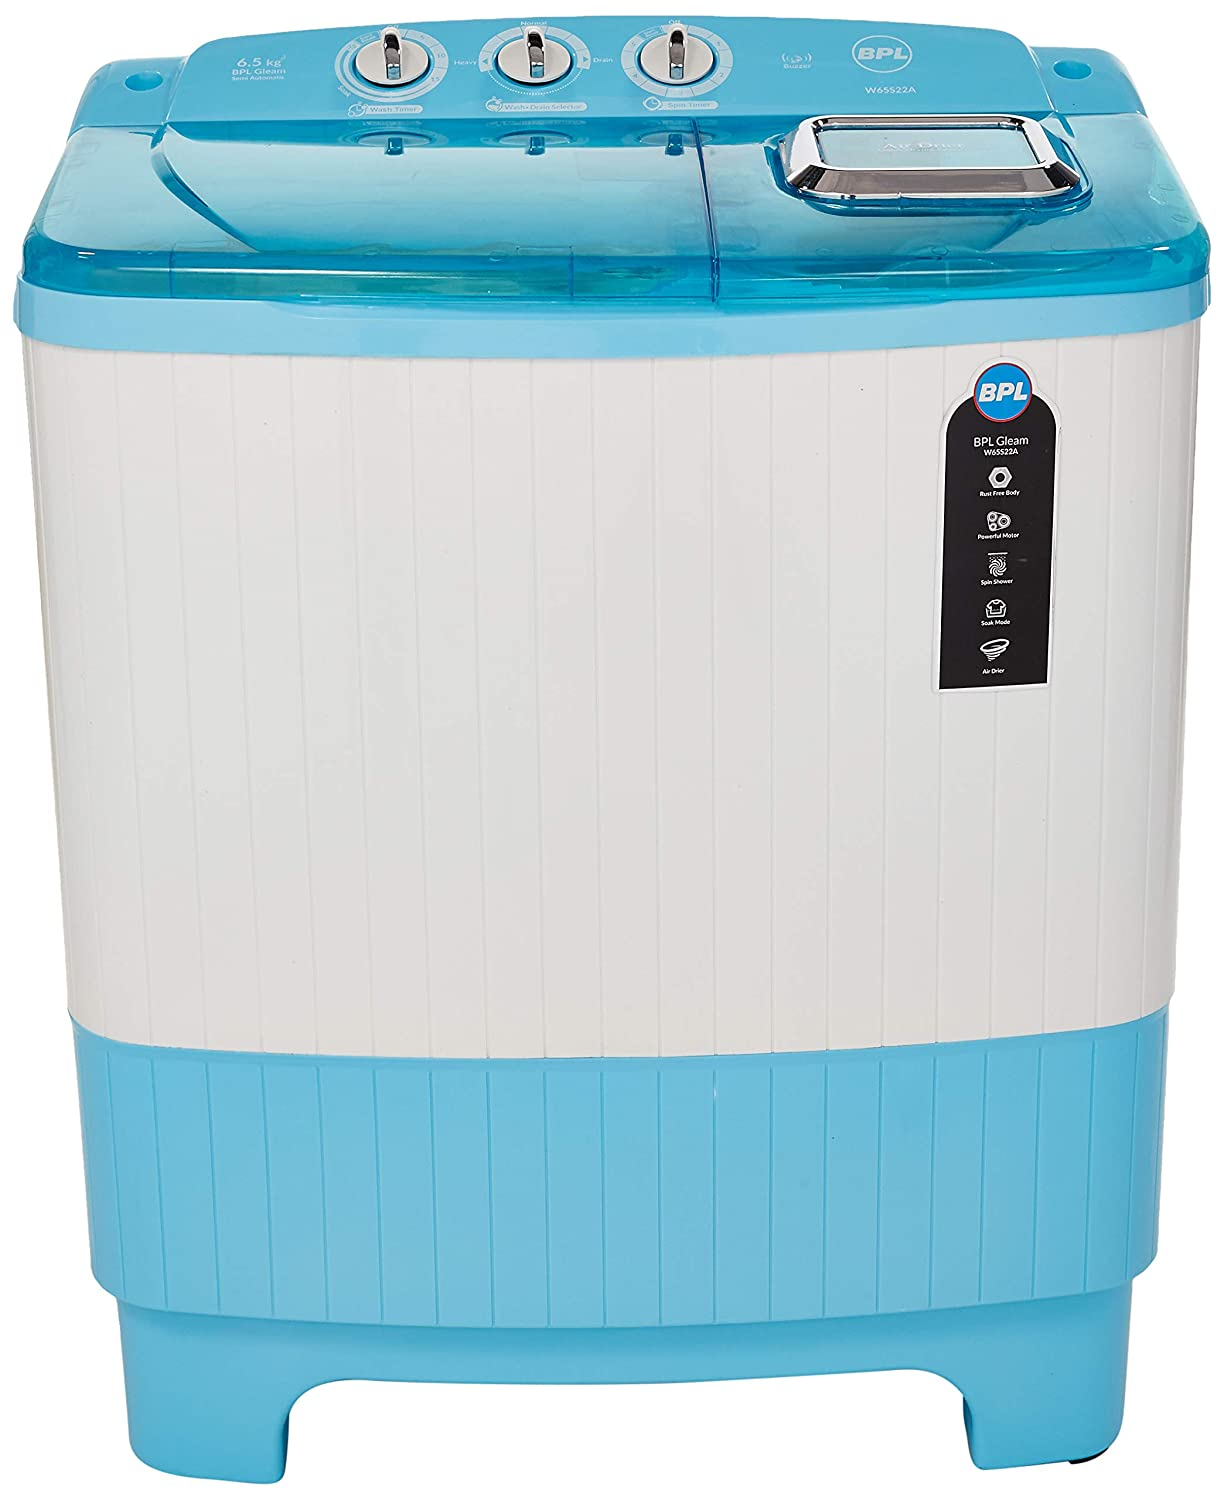 BPL 6.5 Kg W65S22A Semi-Automatic Top Loading Washing Machine